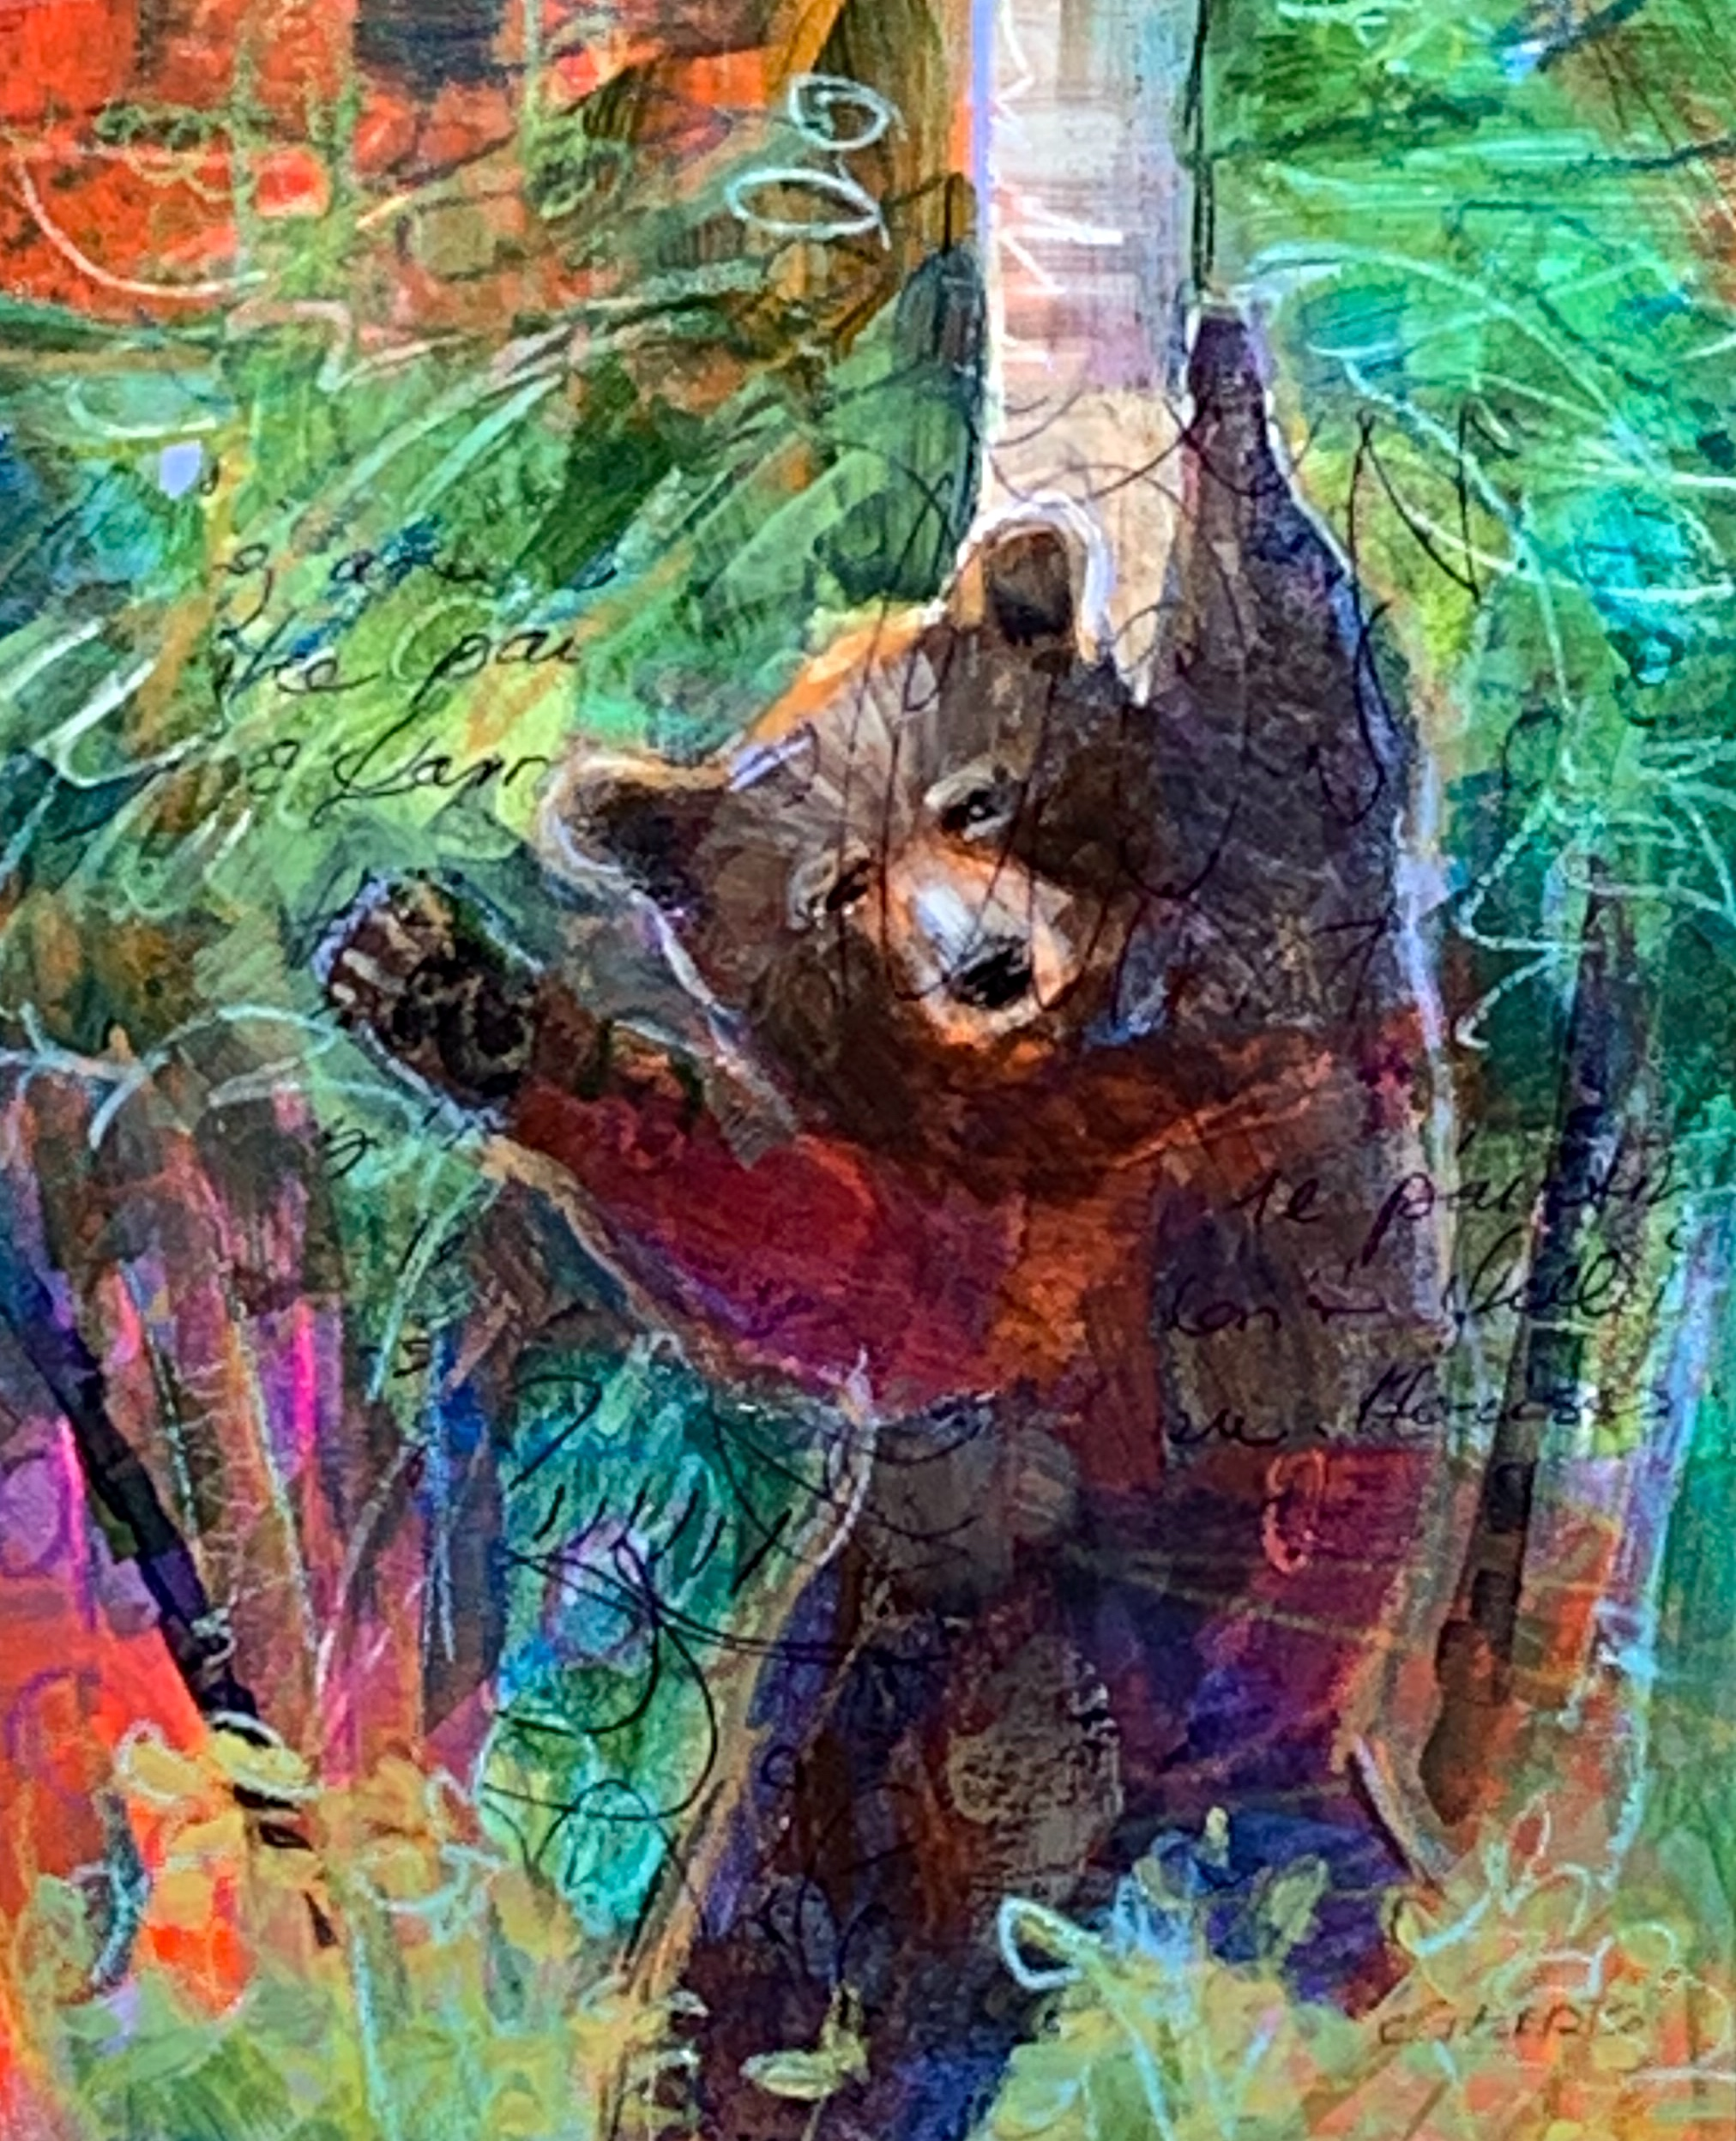 Pole Dancer, mixed media bear painting by Connie Geerts | Effusion Art Gallery + Cast Glass Studio, Invermere BC